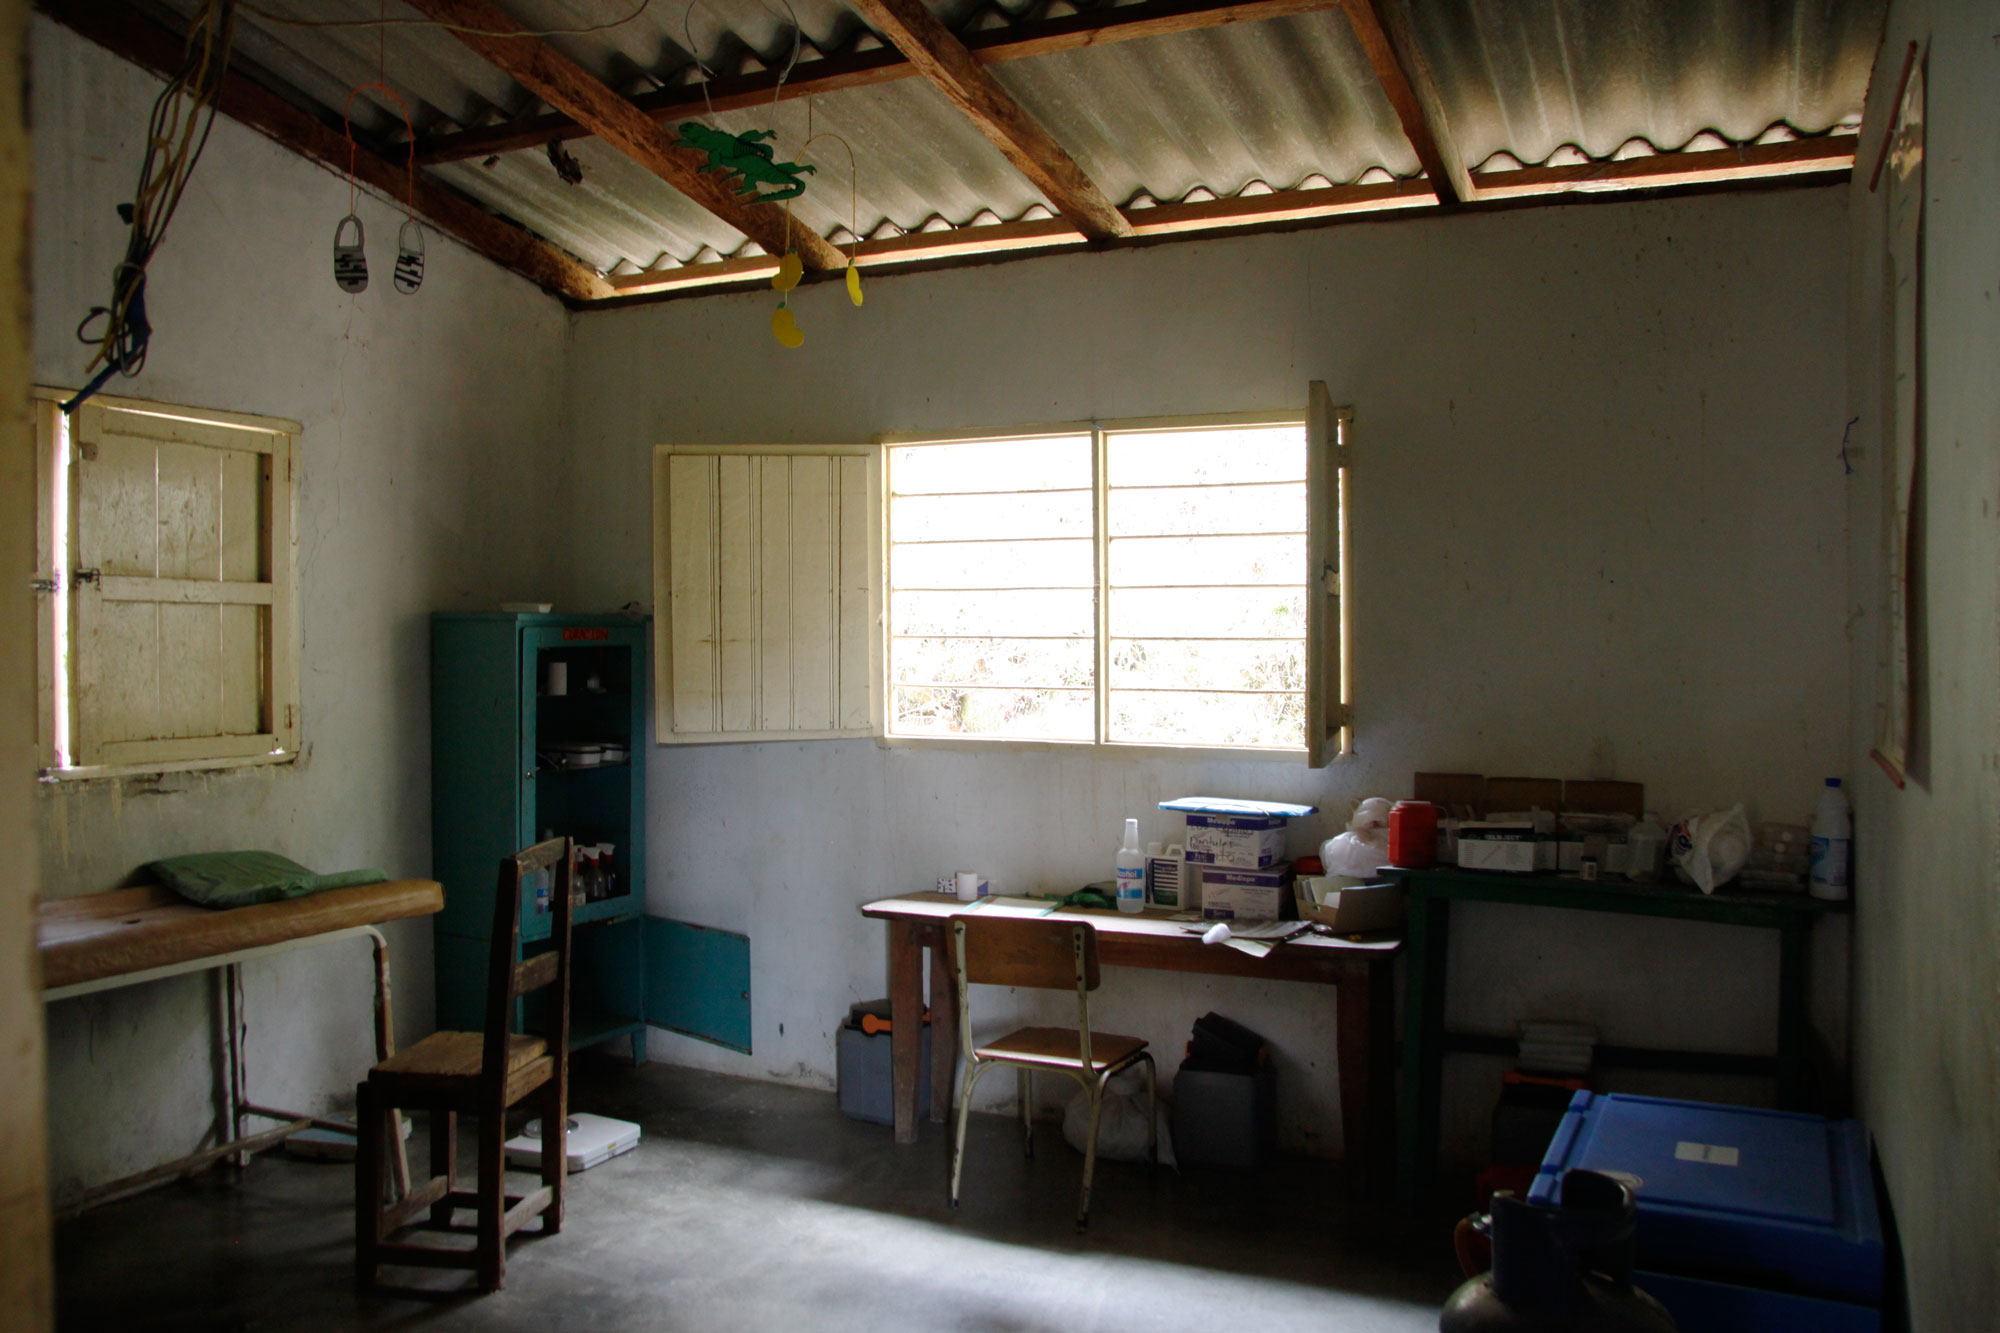 Inside the Health House at Donachui, July 2014